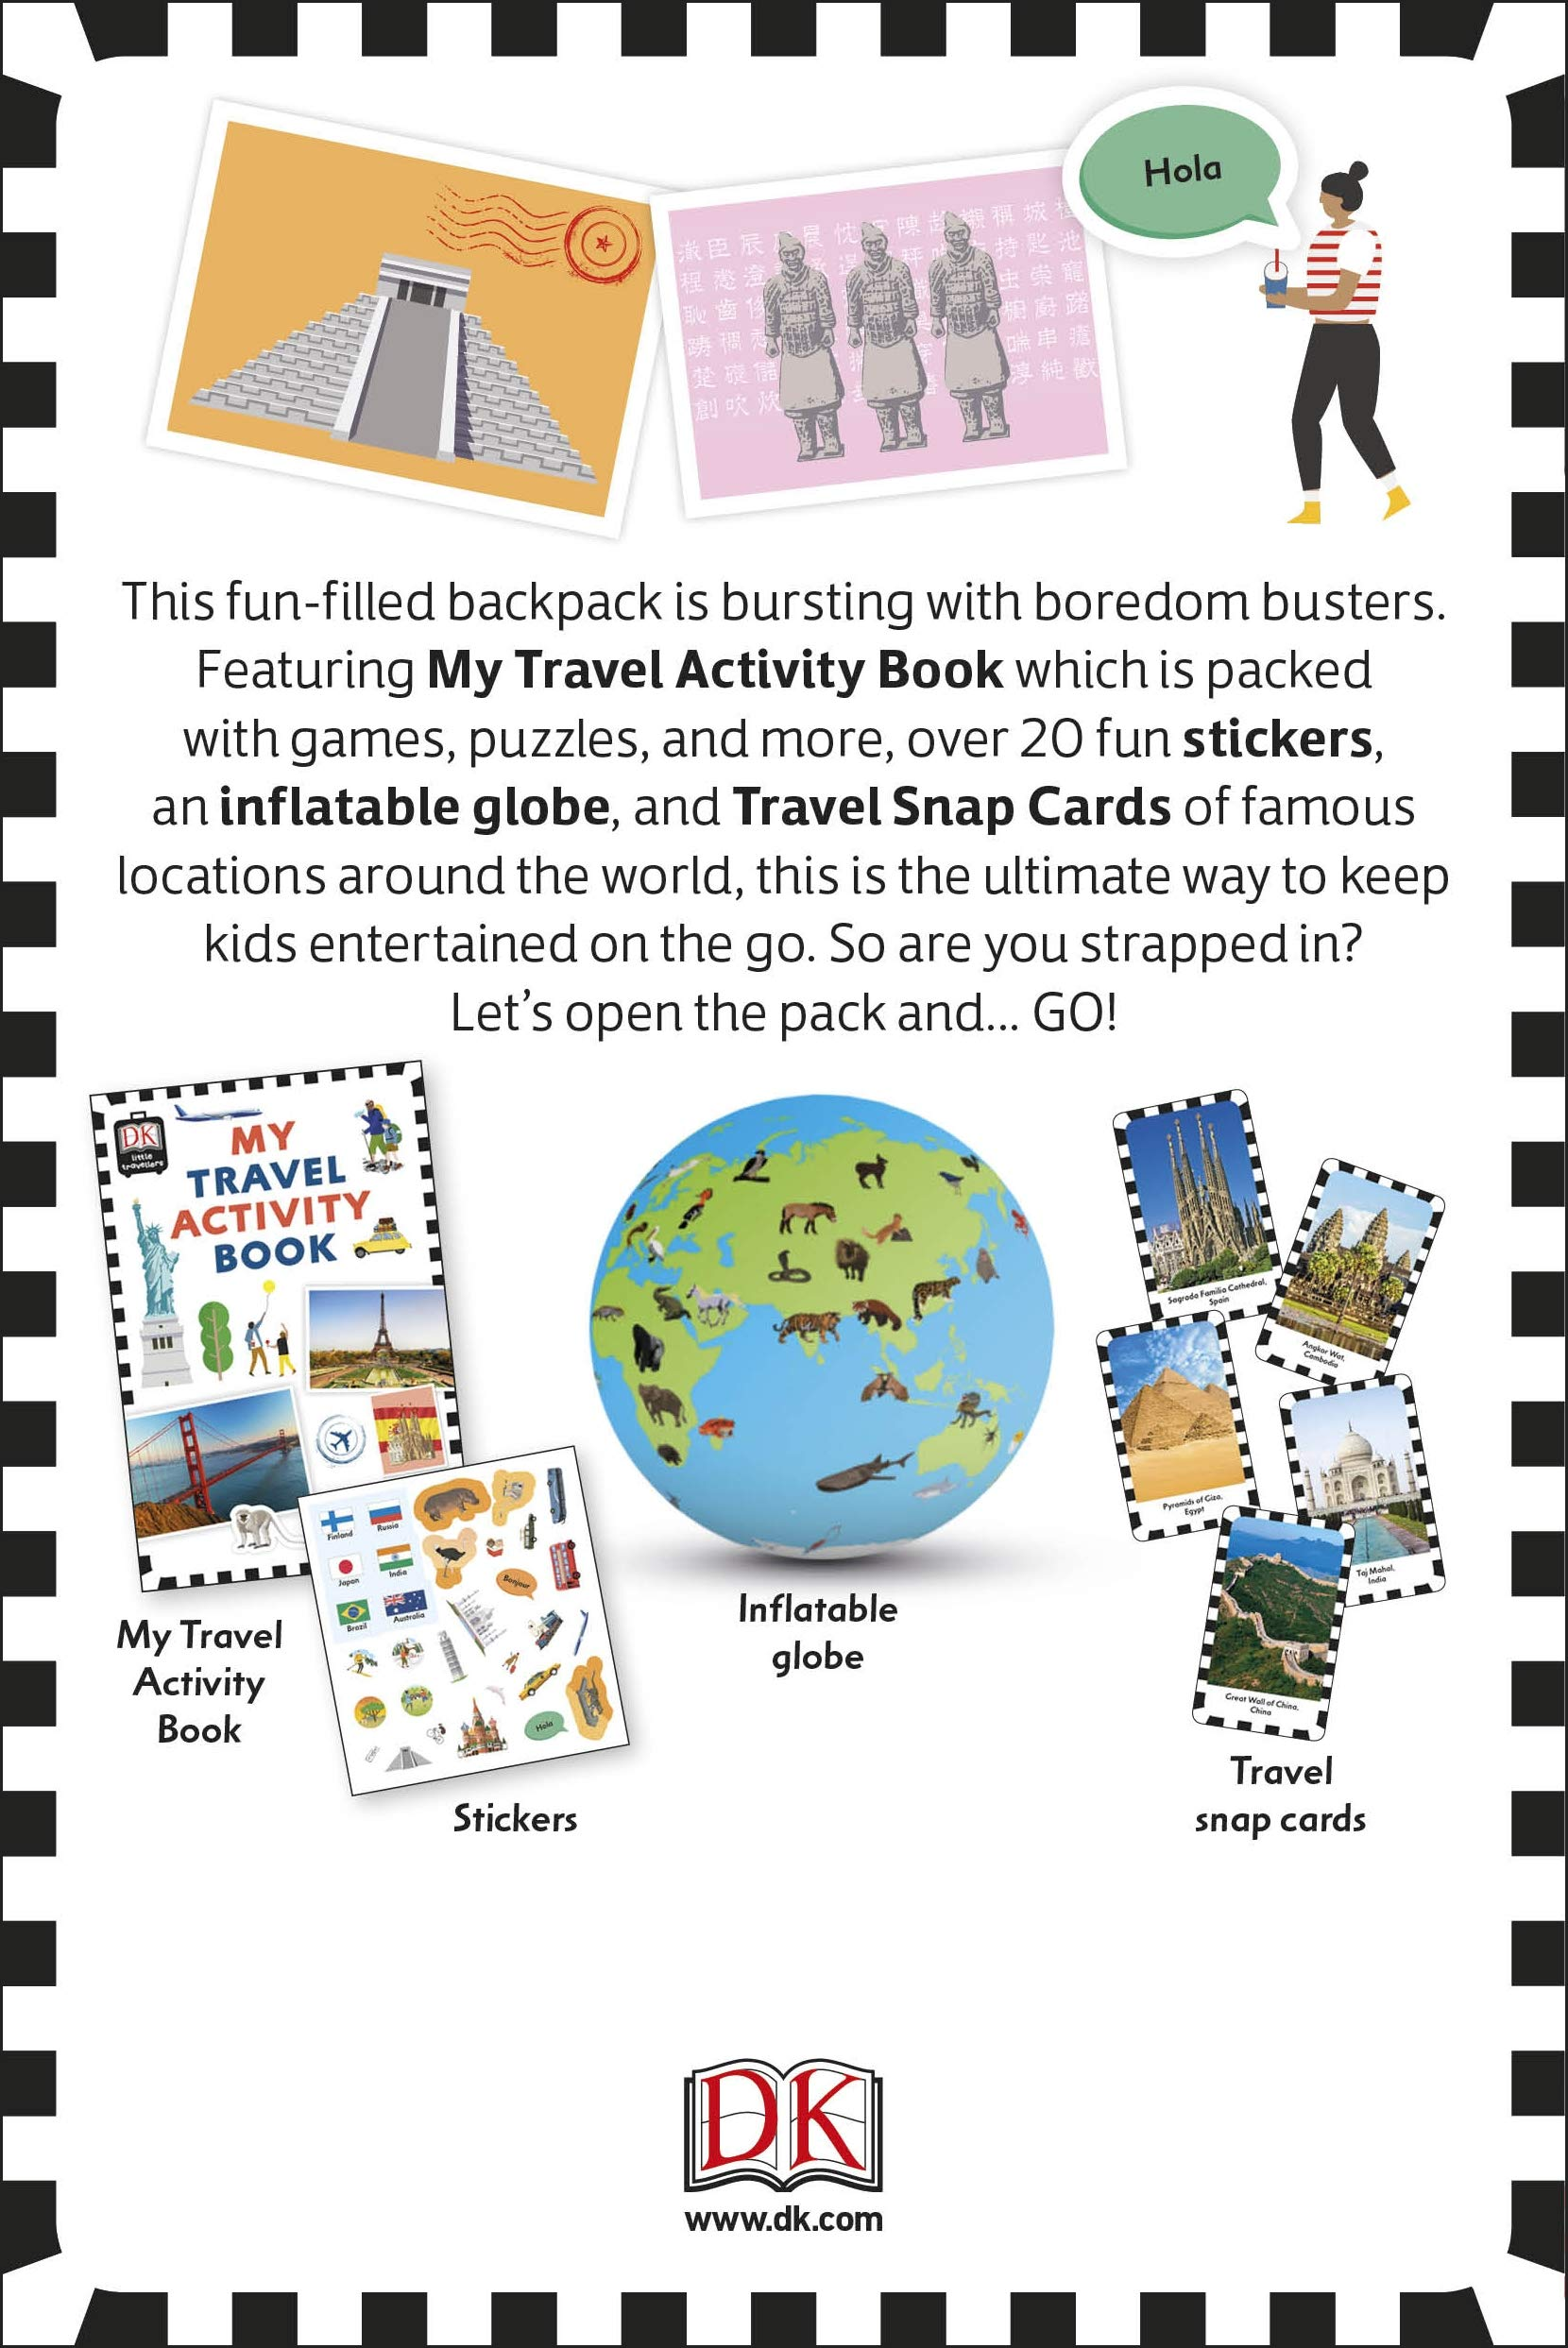 Travel Activity Pack: Fun-filled Backpack Bursting with Games and Activities Idioma Inglés Dk: Amazon.es: DK: Libros en idiomas extranjeros